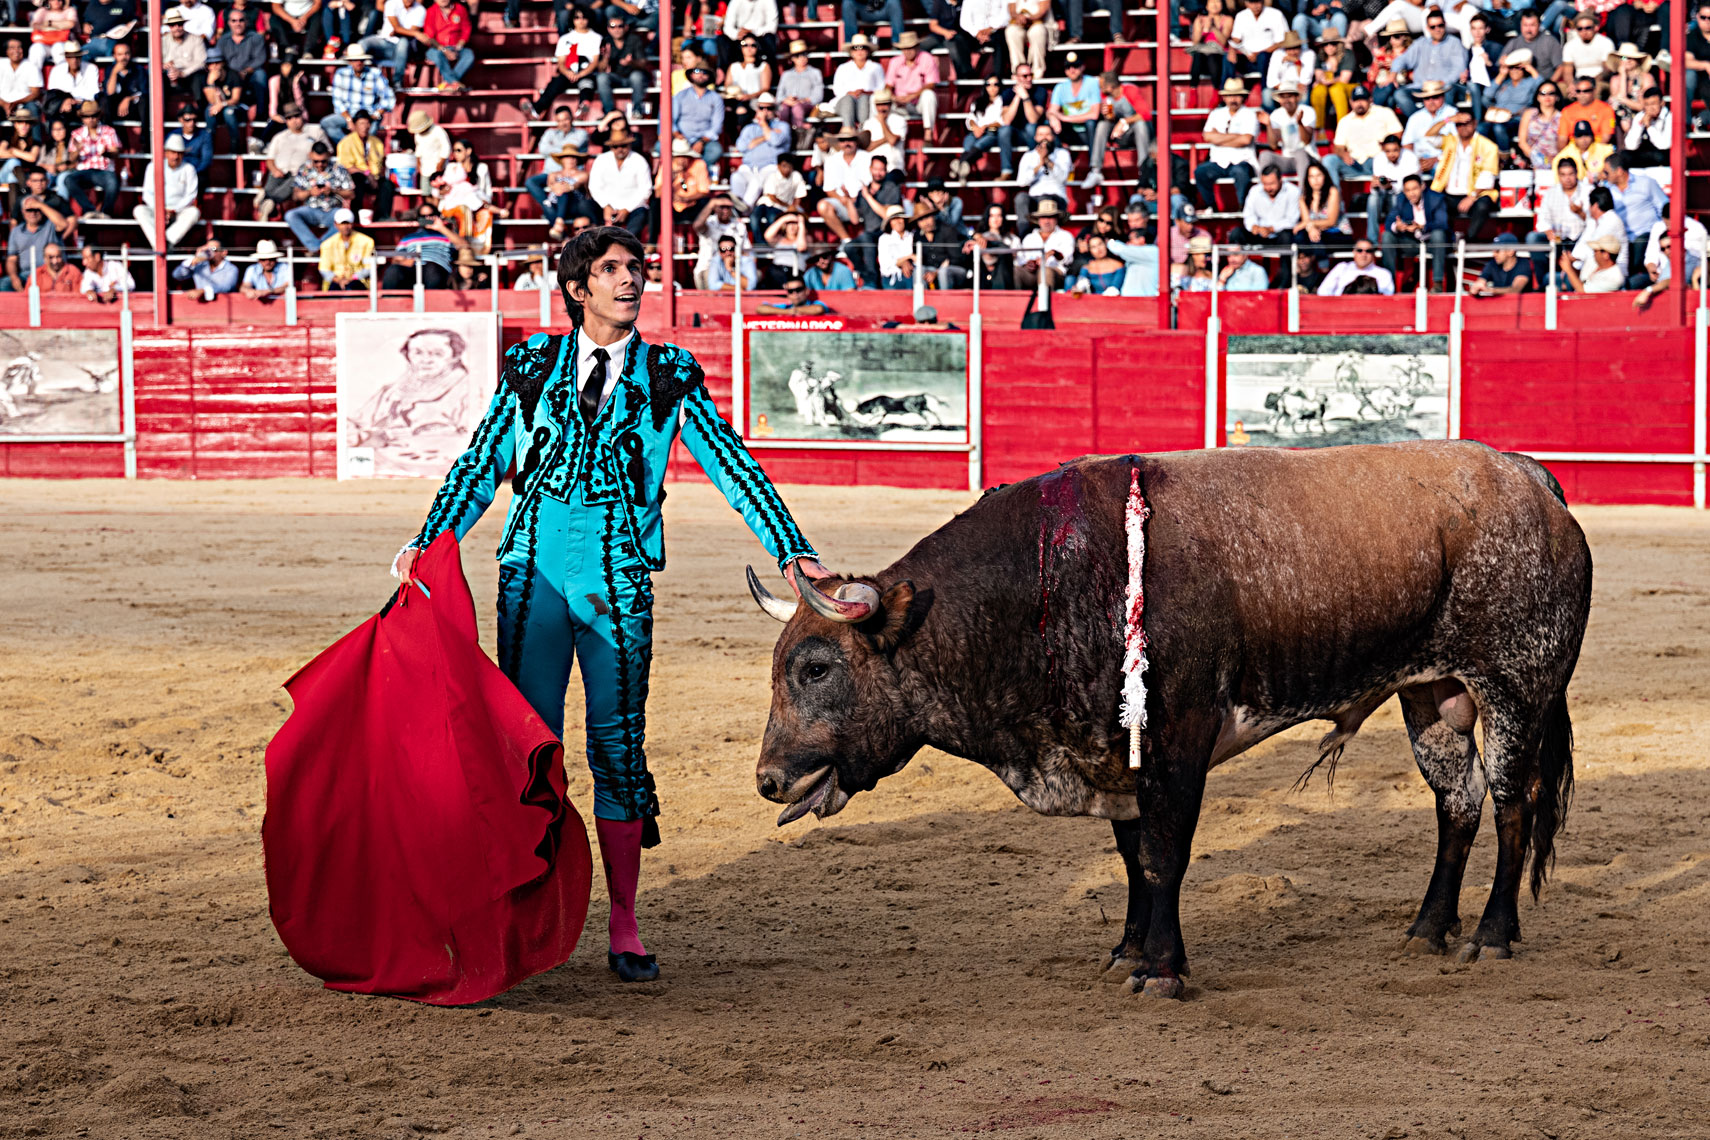 Bullfighting7